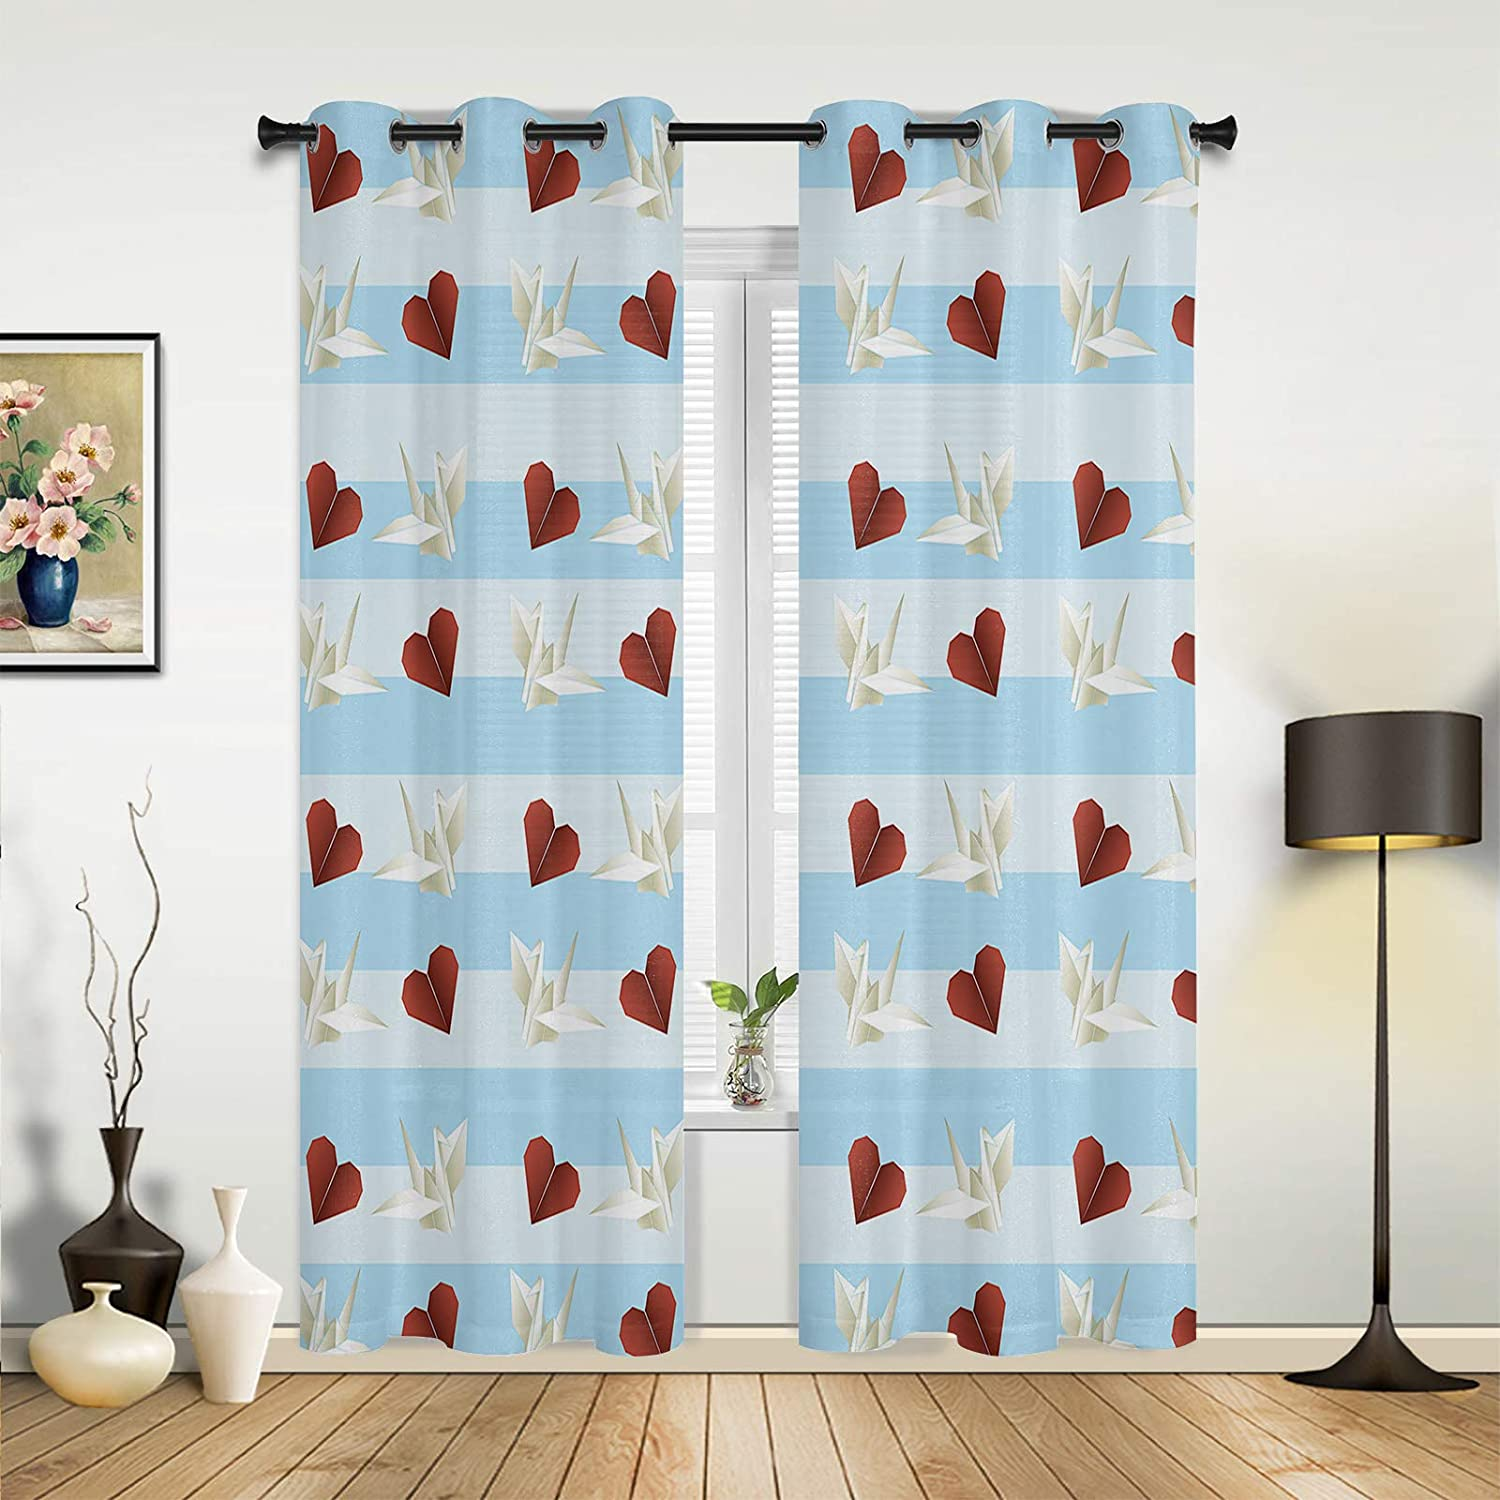 Window Sheer Curtains for Bedroom Day Happy Living Valentine's Tulsa Mall San Jose Mall R